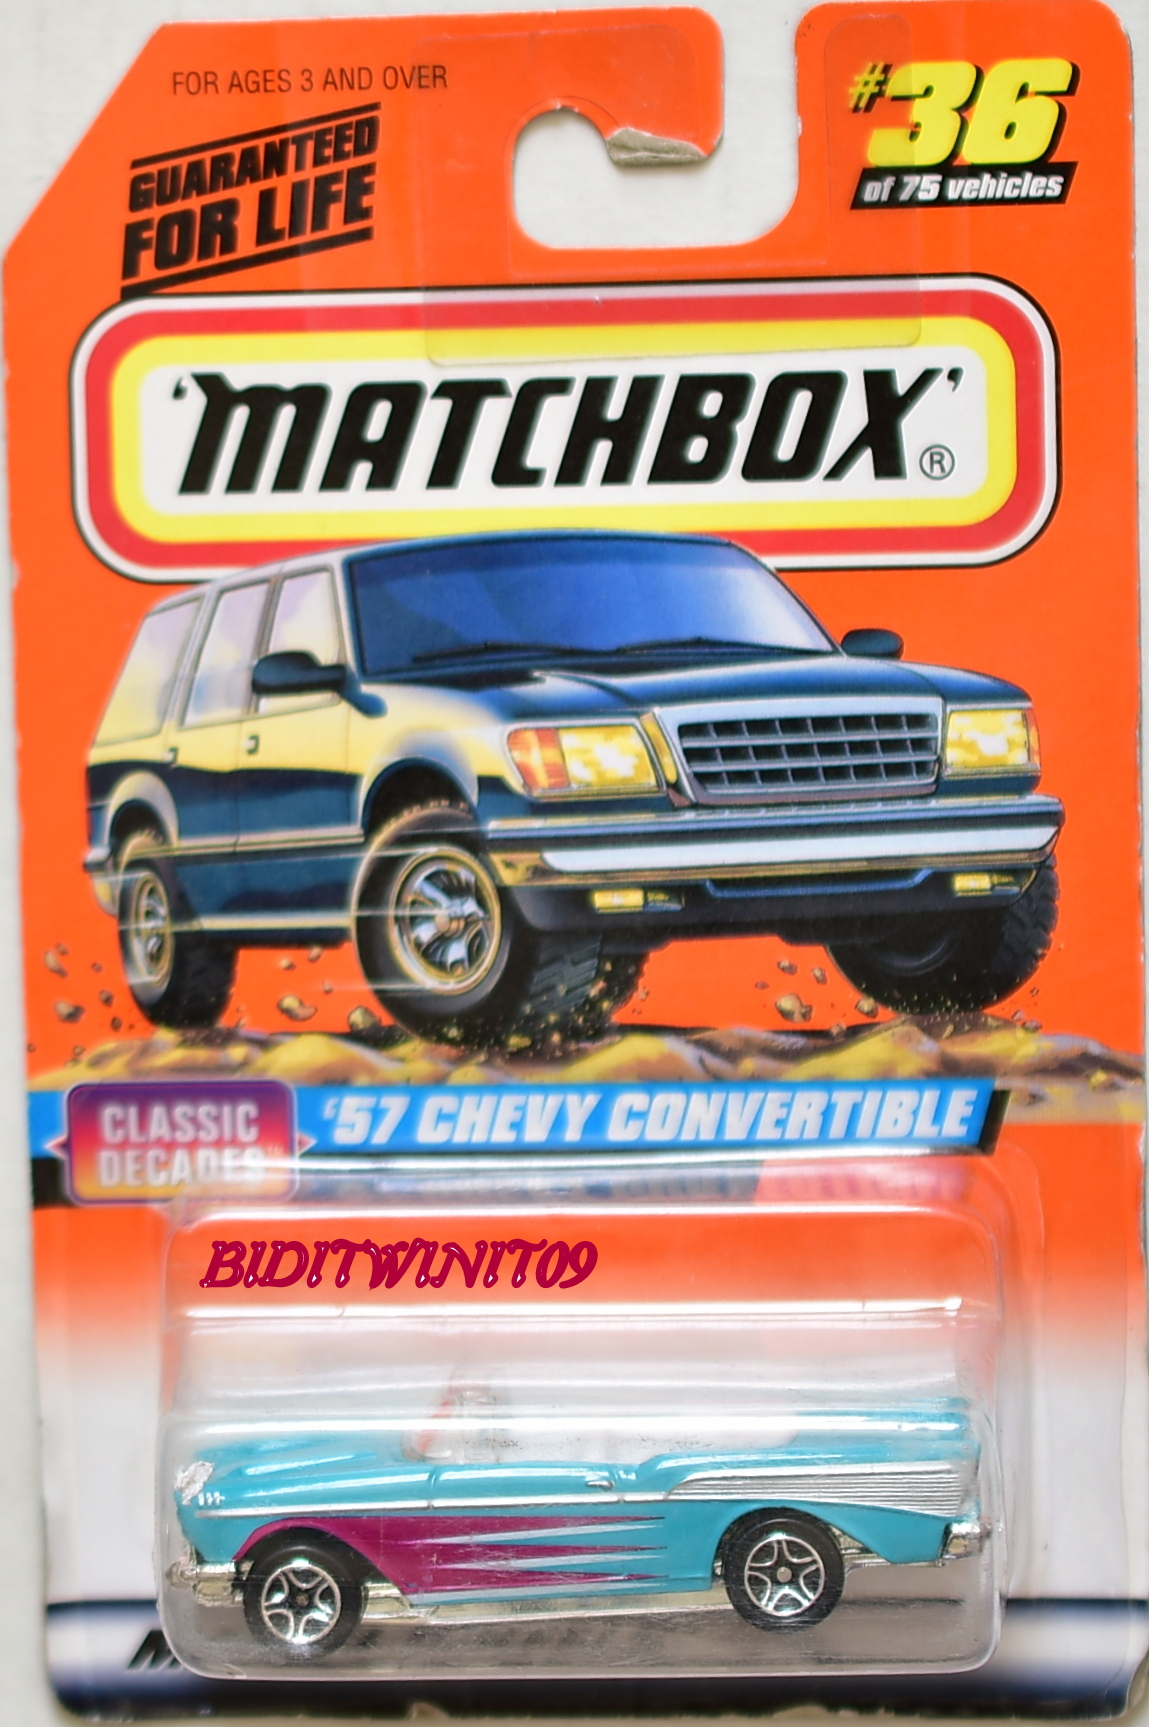 MATCHBOX 1998 #36 OF 75 '57 CHEVY CONVERTIBLE - CLASSIC DECADES